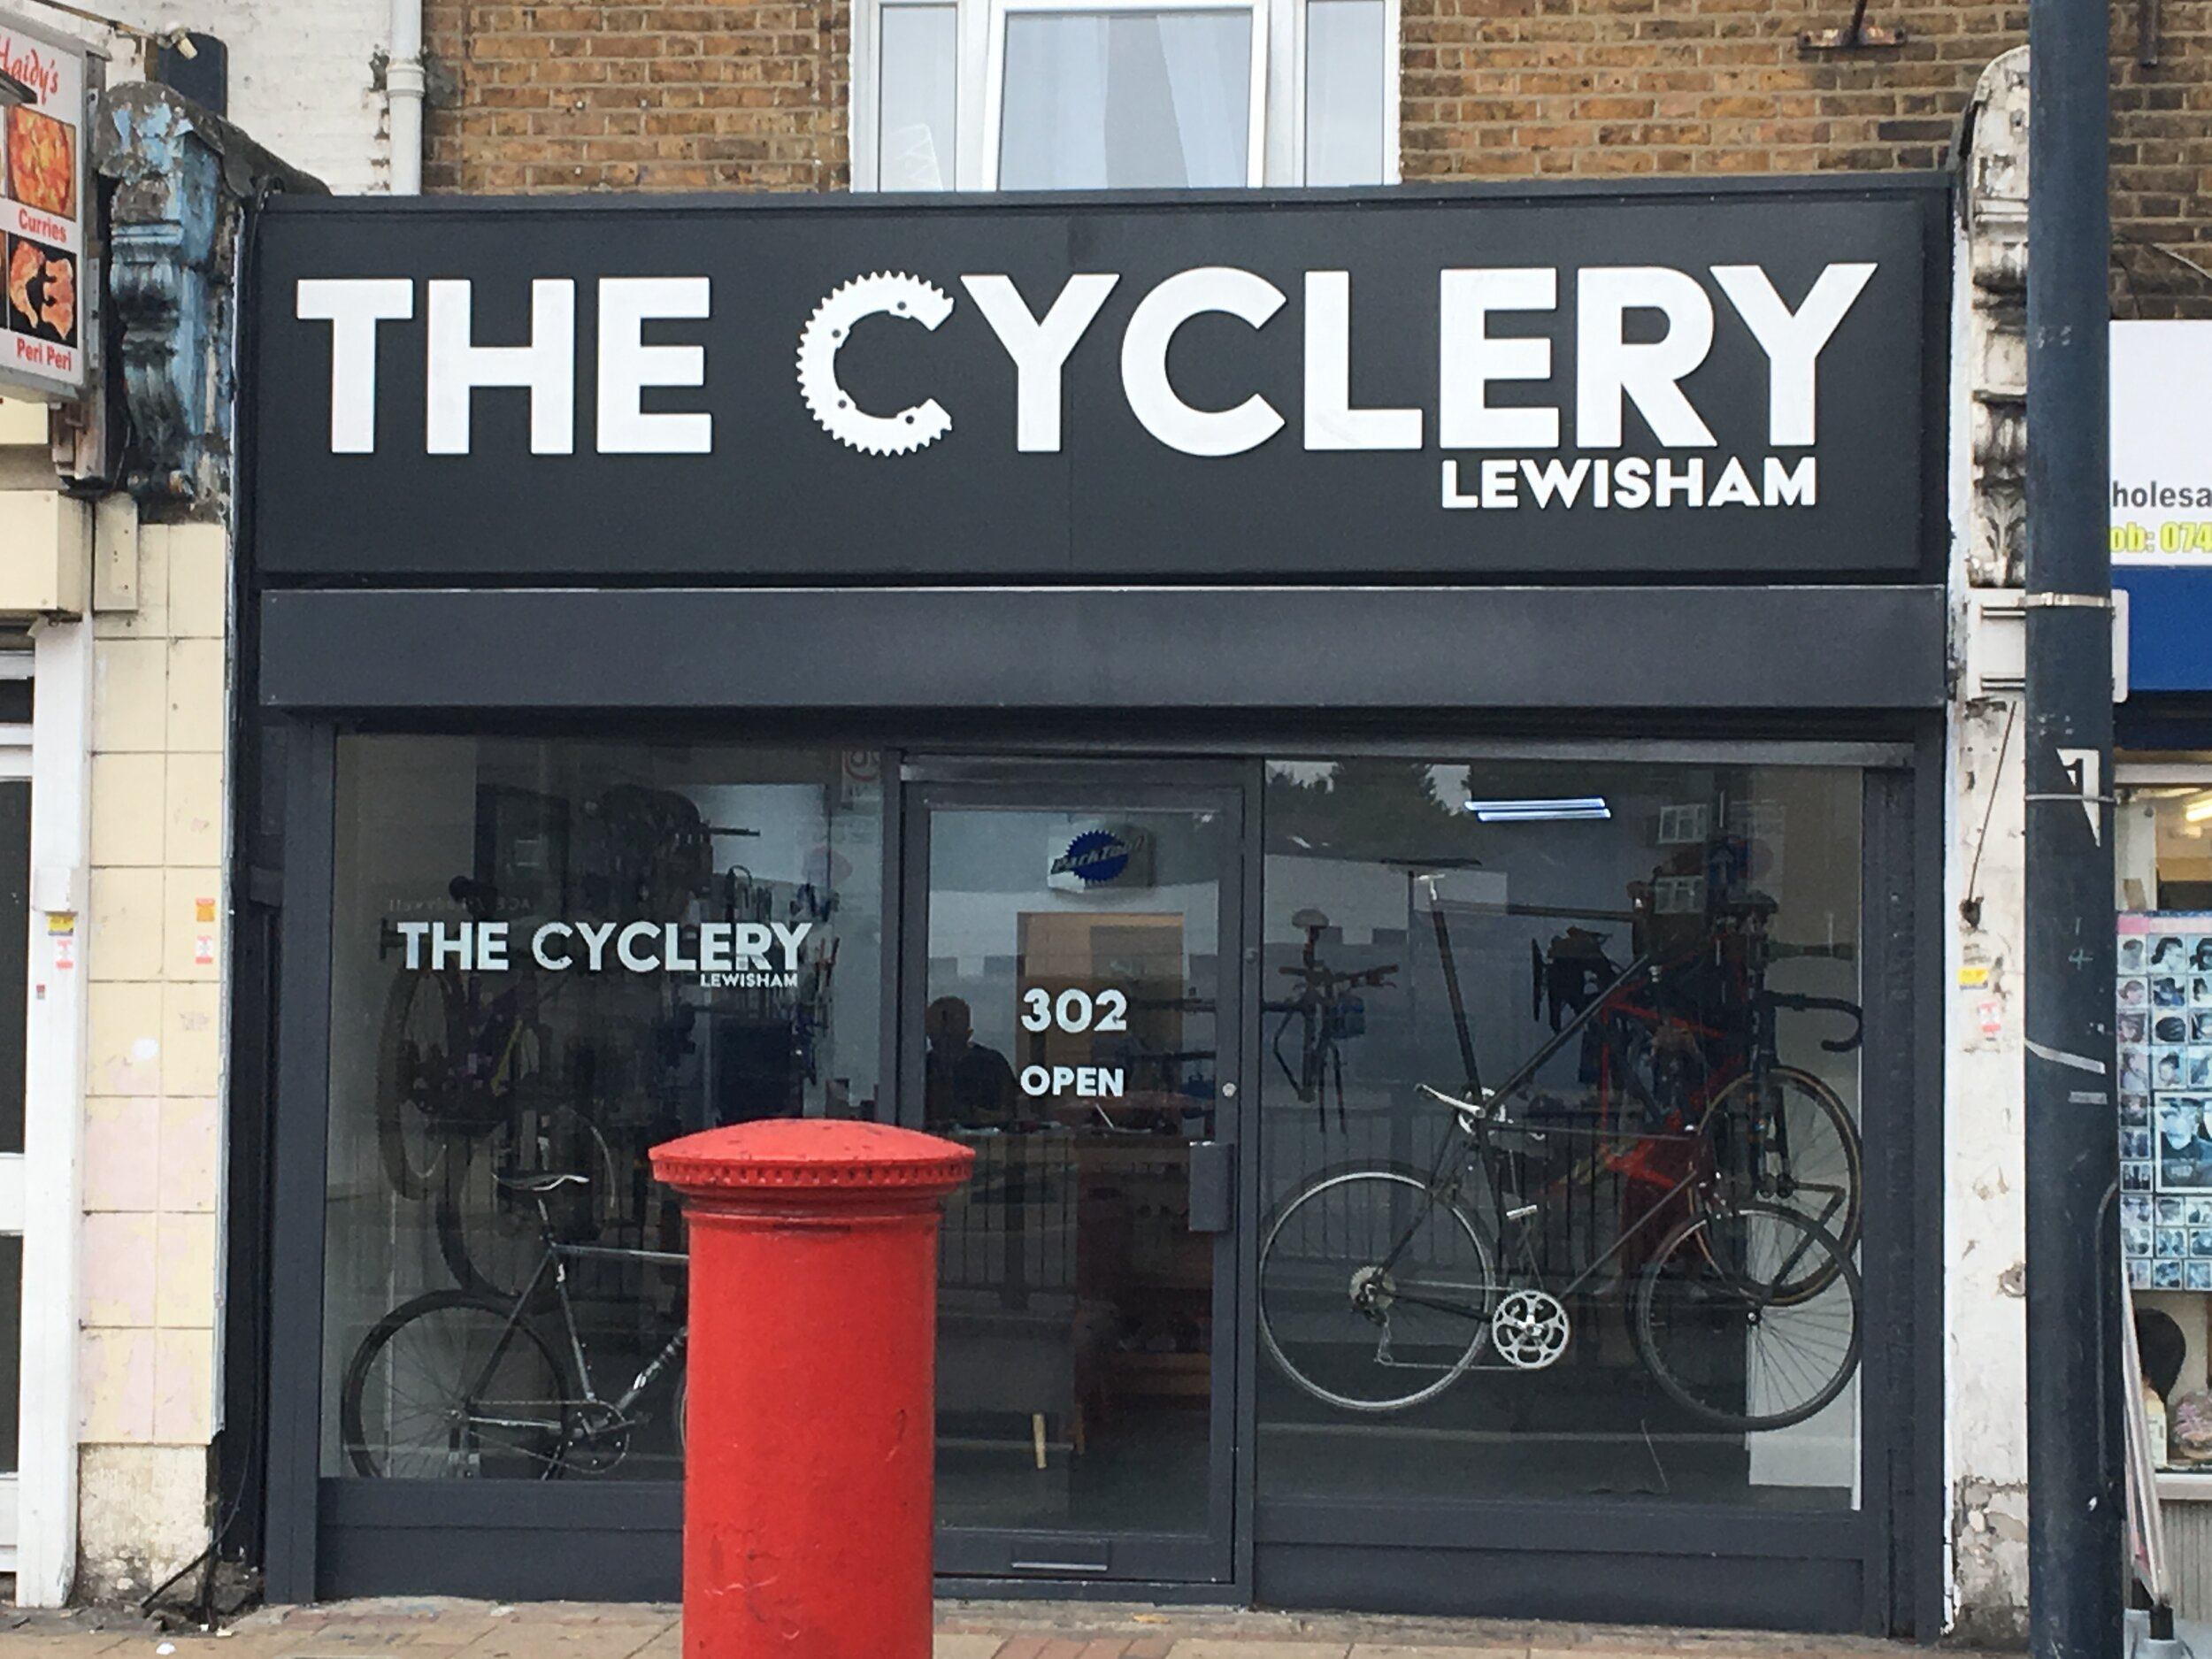 the cyclery south london club